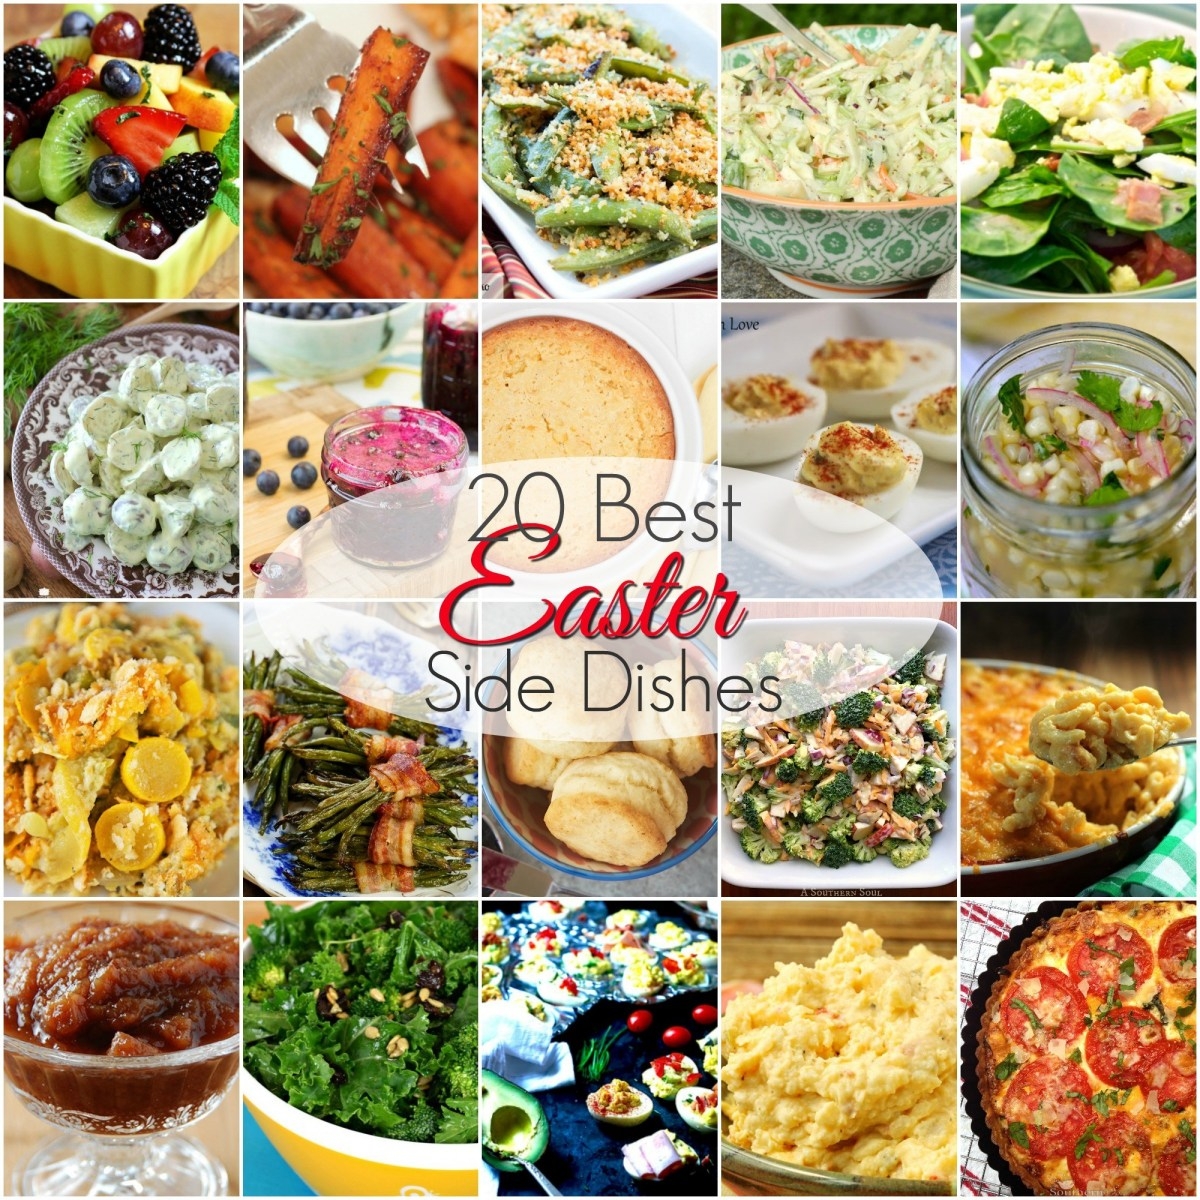 20 BEST Easter Side Dishes